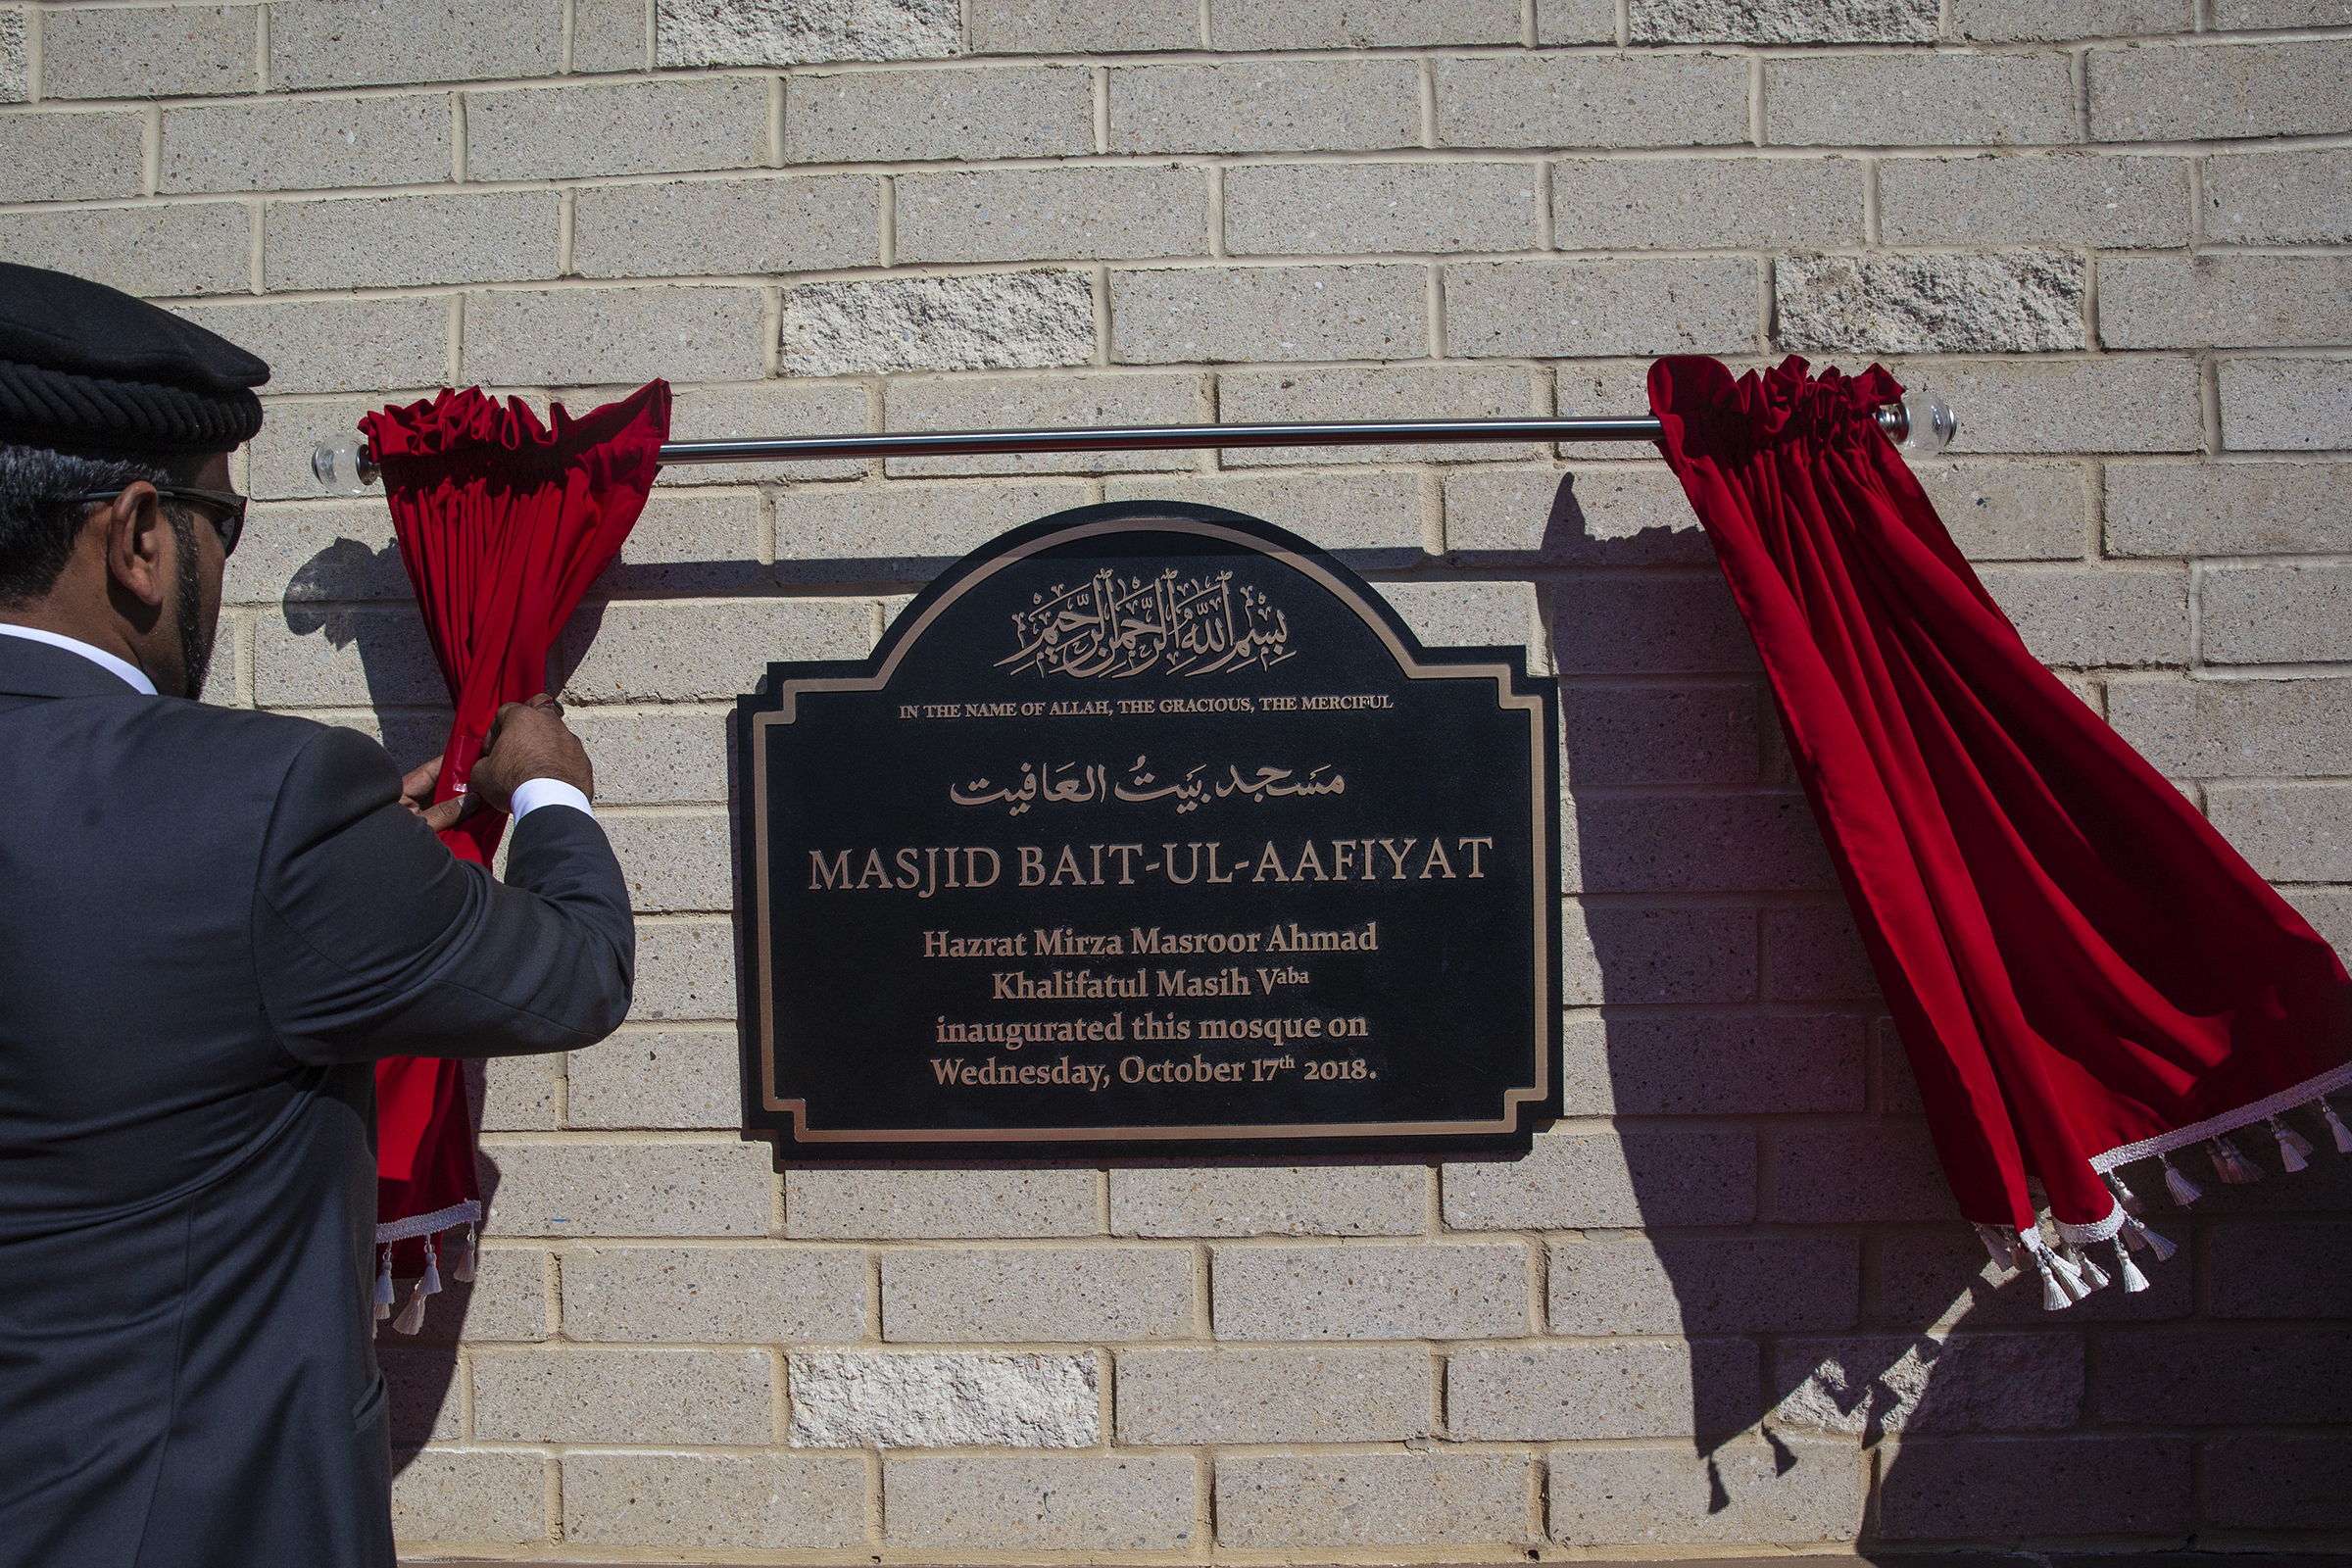 A plaque is unveiled during the arrival and visit of Mirza Masroor Ahmad, international leader of the Ahmadiyya Muslim community.